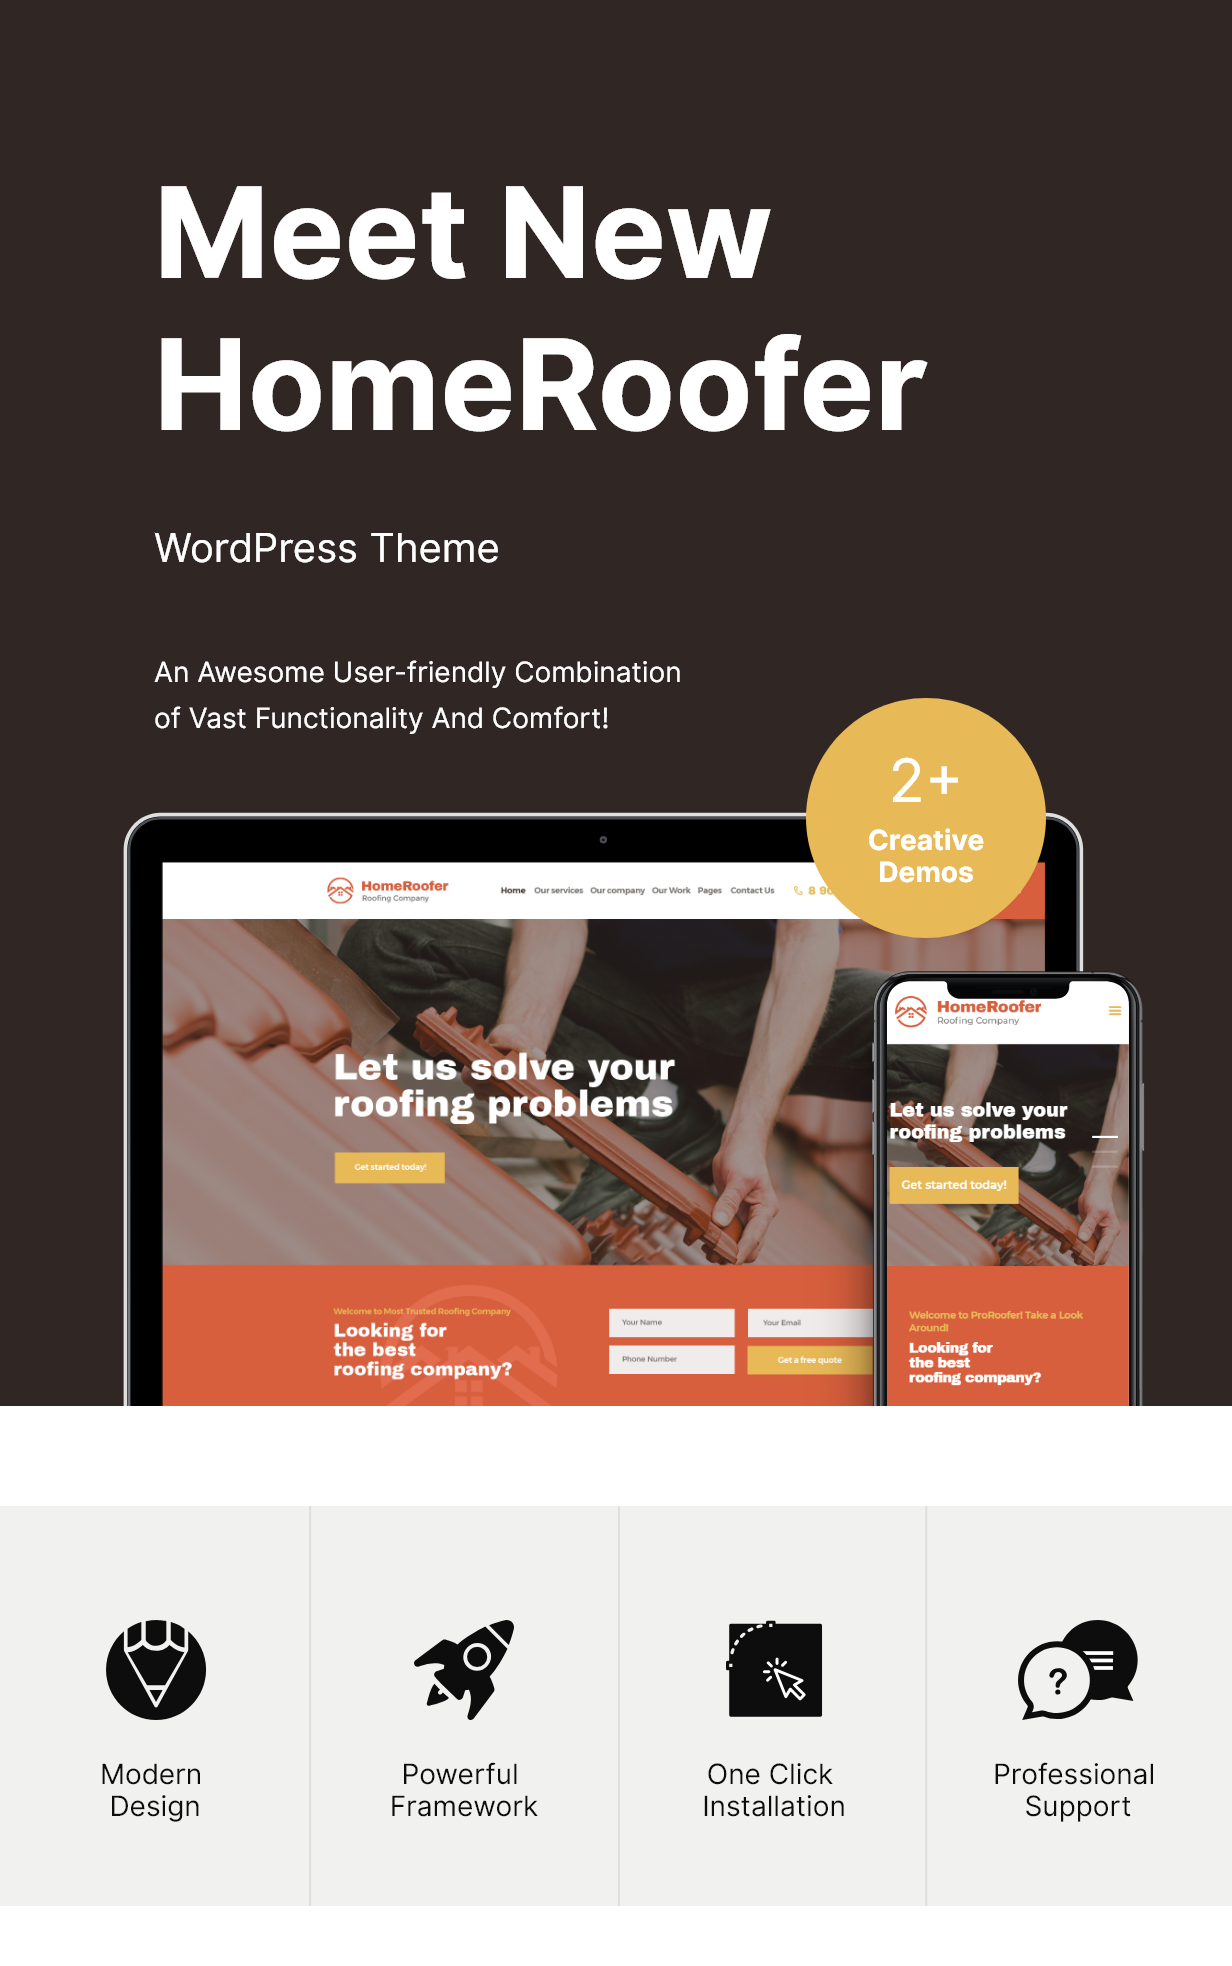 HomeRoofer | Roofing Company Services & Construction WordPress Theme - 2